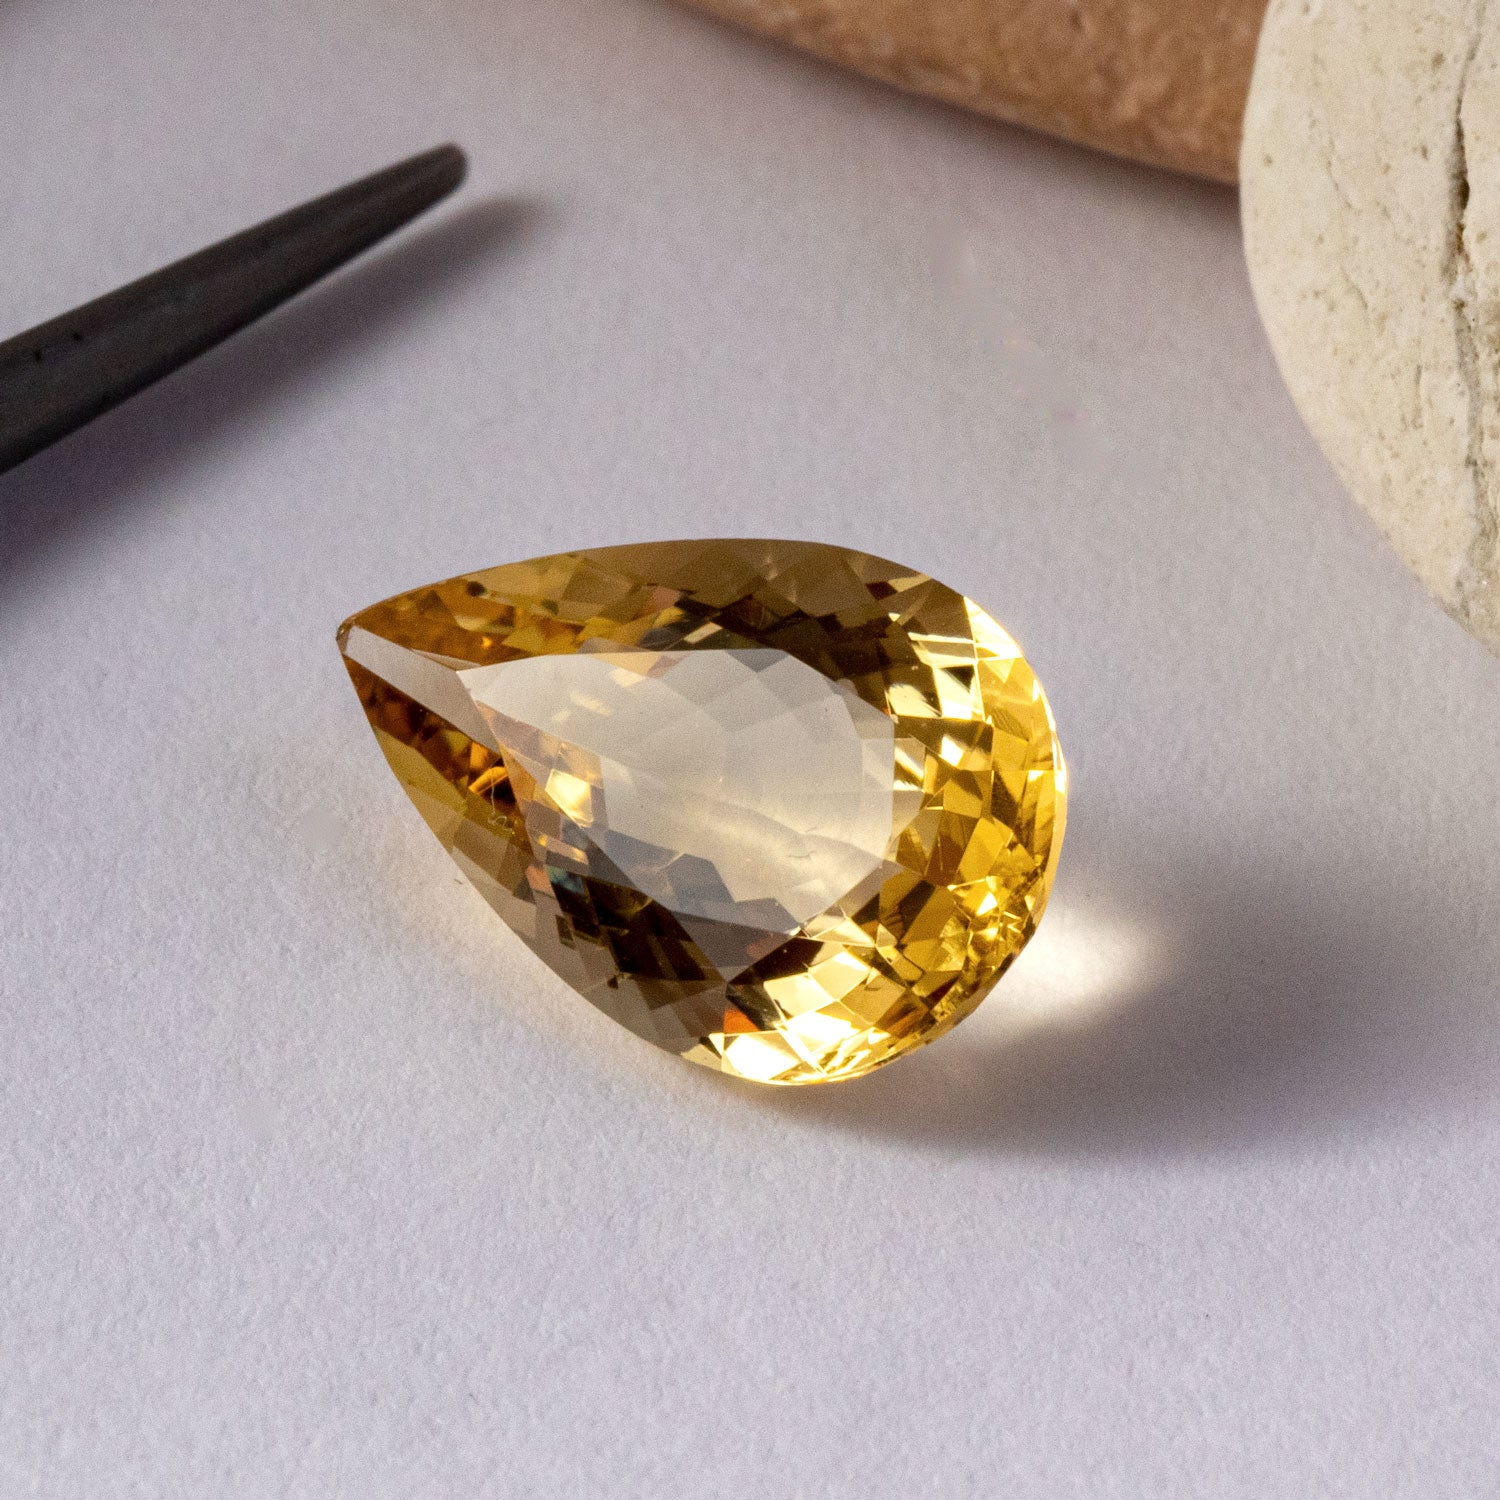 This stunning natural heliodor has a beautiful golden hue. The piece is unheated and totally eye and loupe clean.